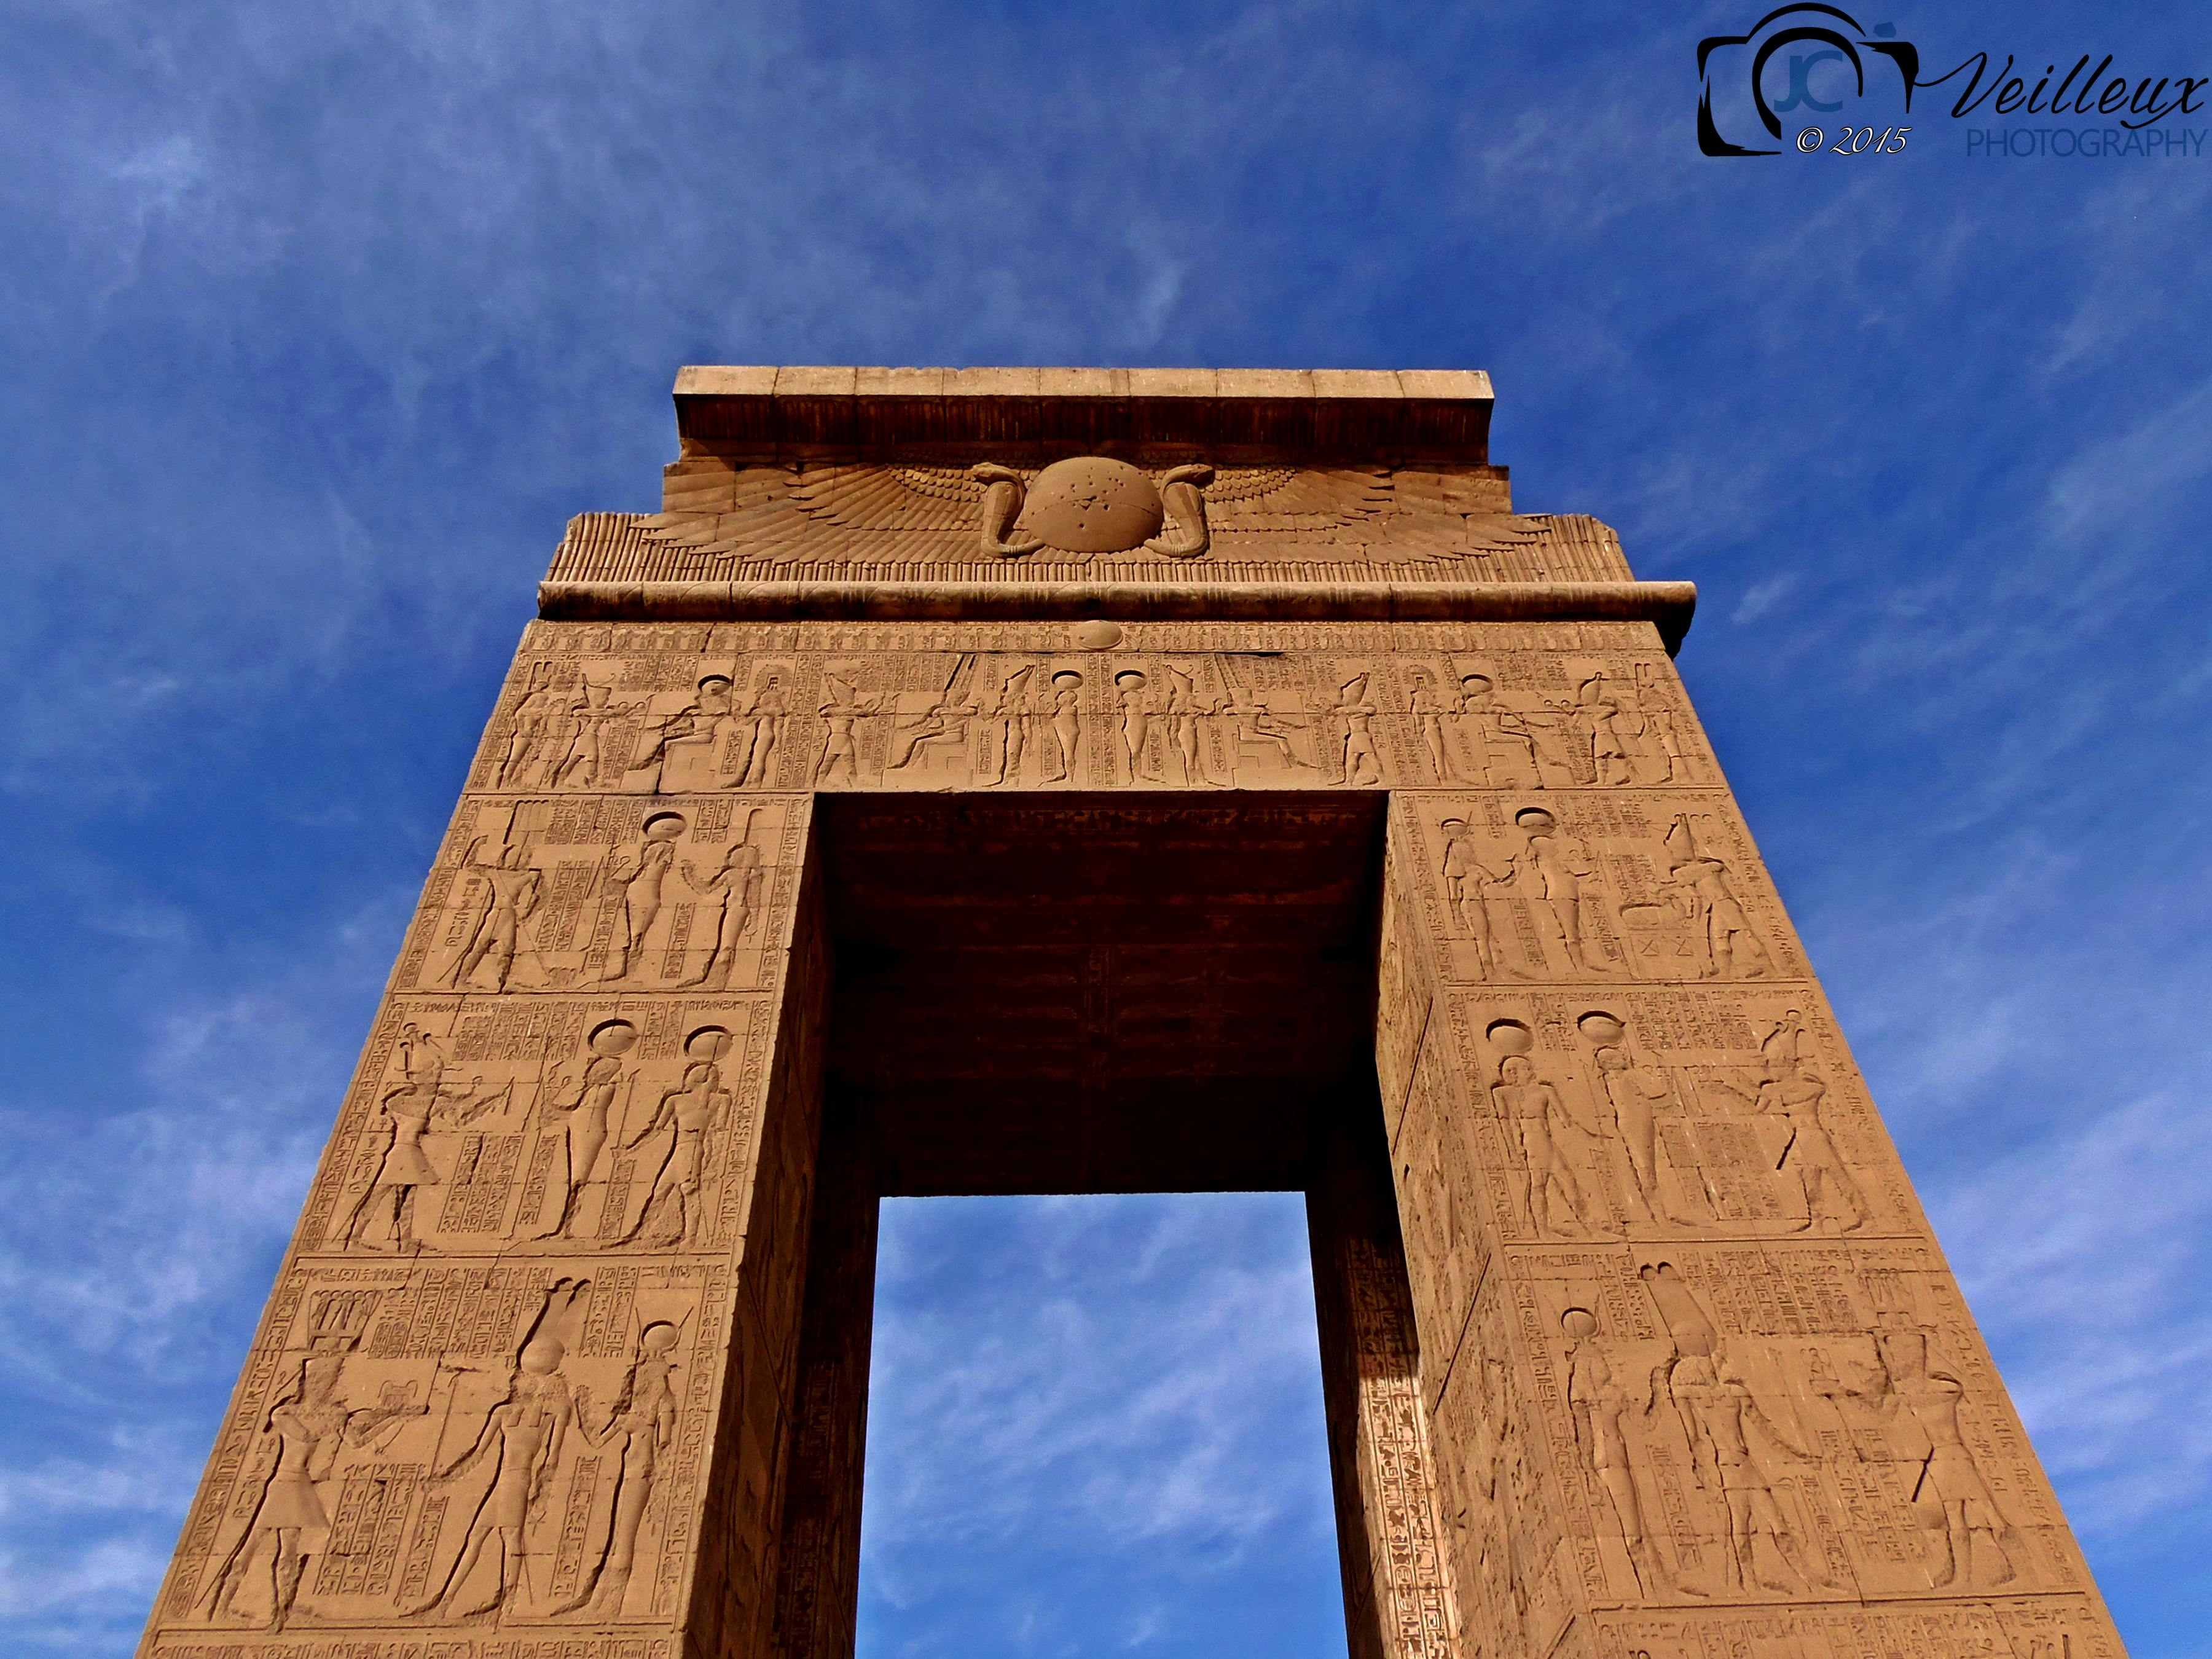 Gate of Ptolemy III No. 2